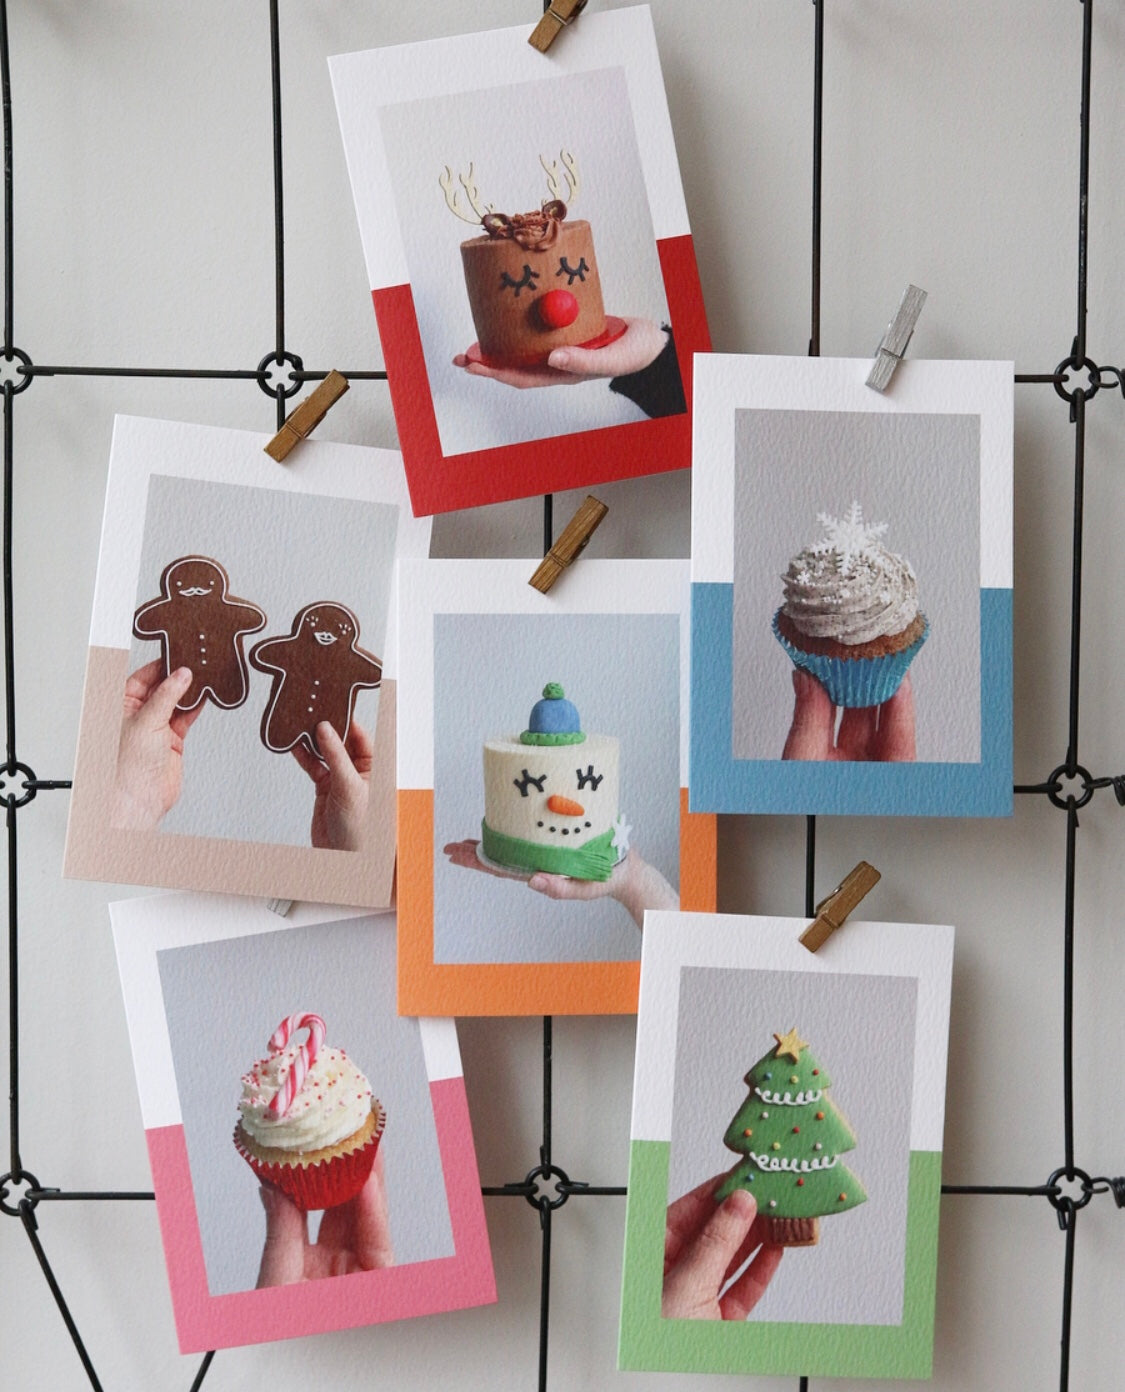 Selection of Christmas Cards with Photos of Cakes, Cupcakes and Biscuits Hanging on Wall